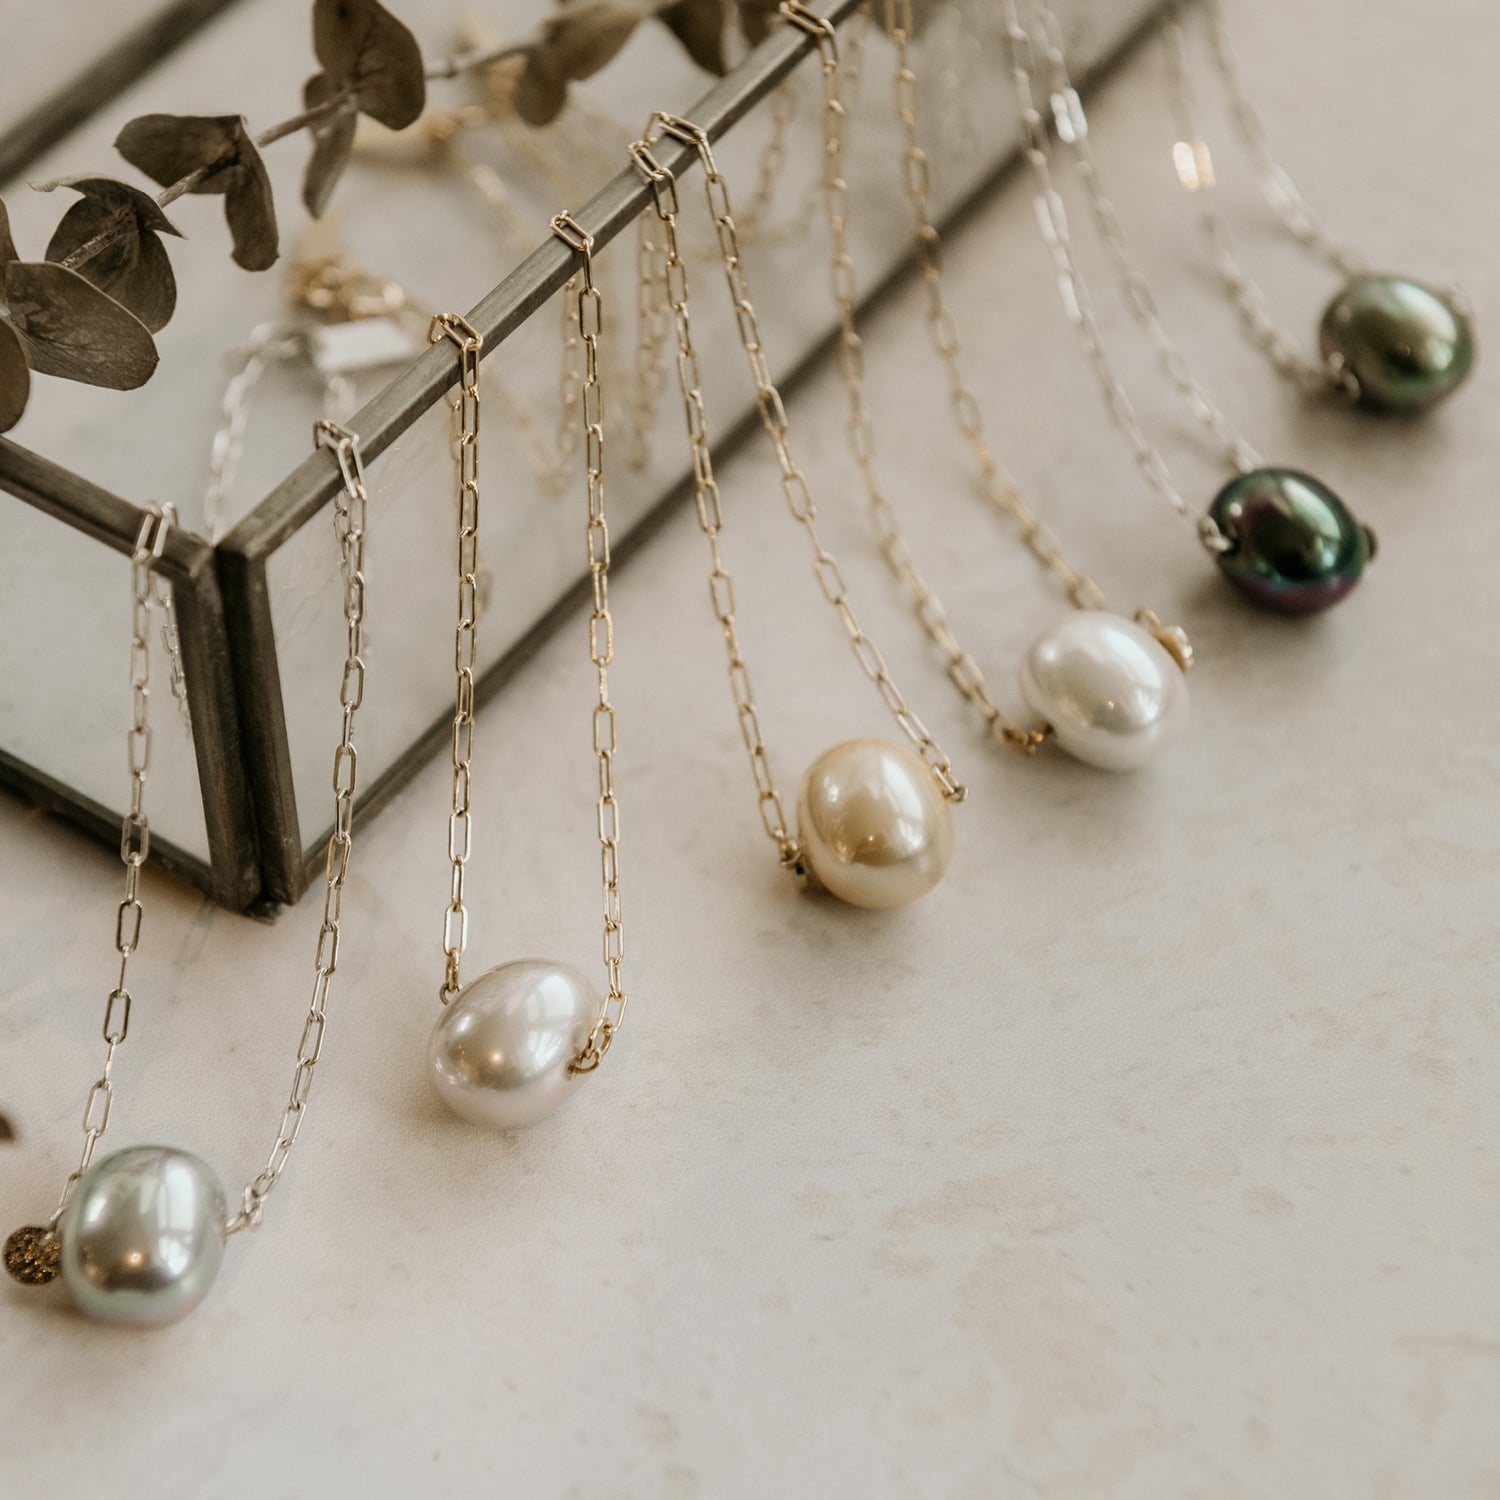 Image of Kamille Egg & Pearls Necklace